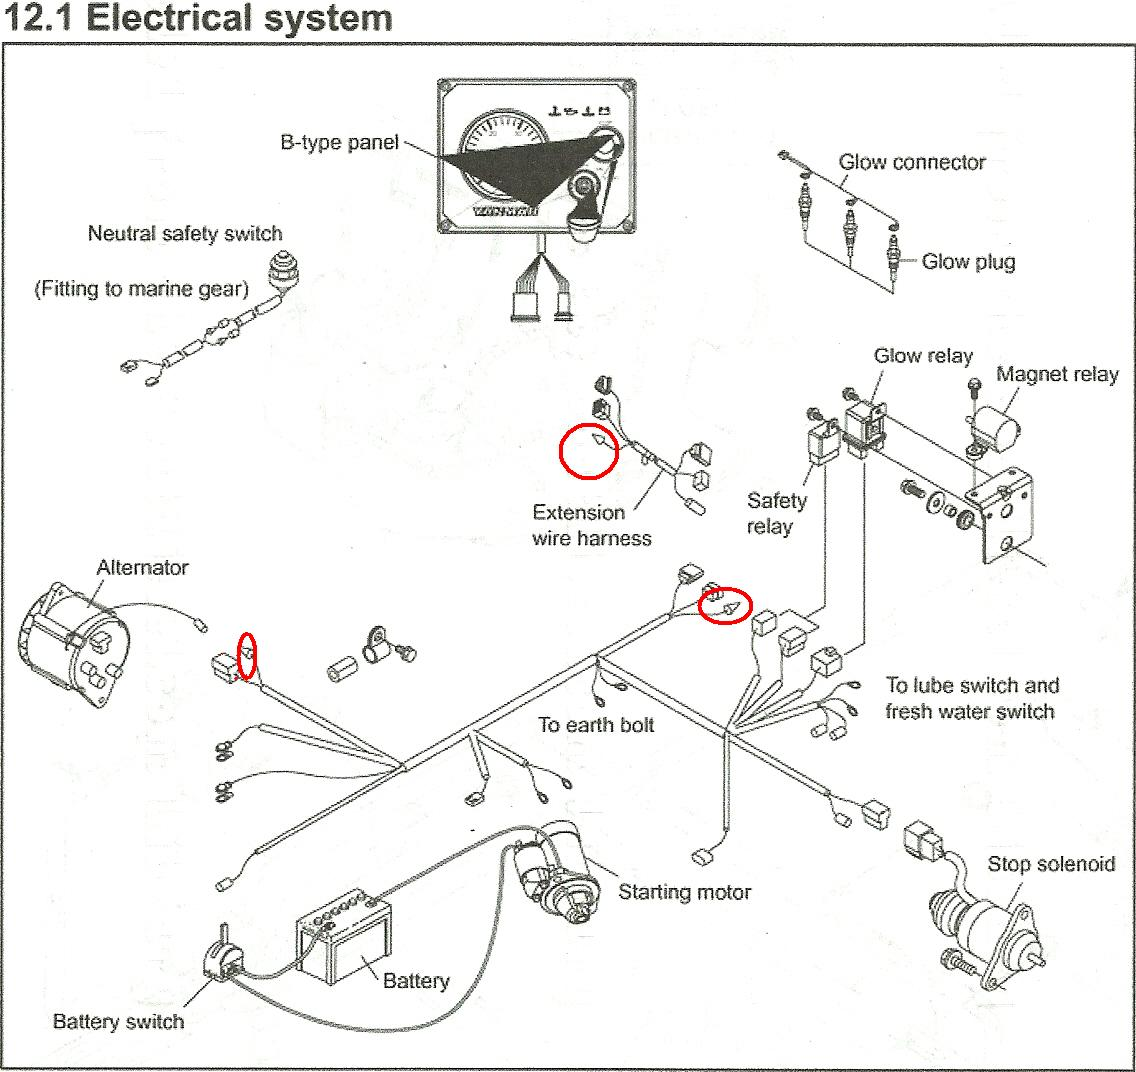 Yanmar 3ym30 Wiring Diagram 27 Images 2011 08 122557 Scan0009 I Have A And The Charge Light Does Not Come On